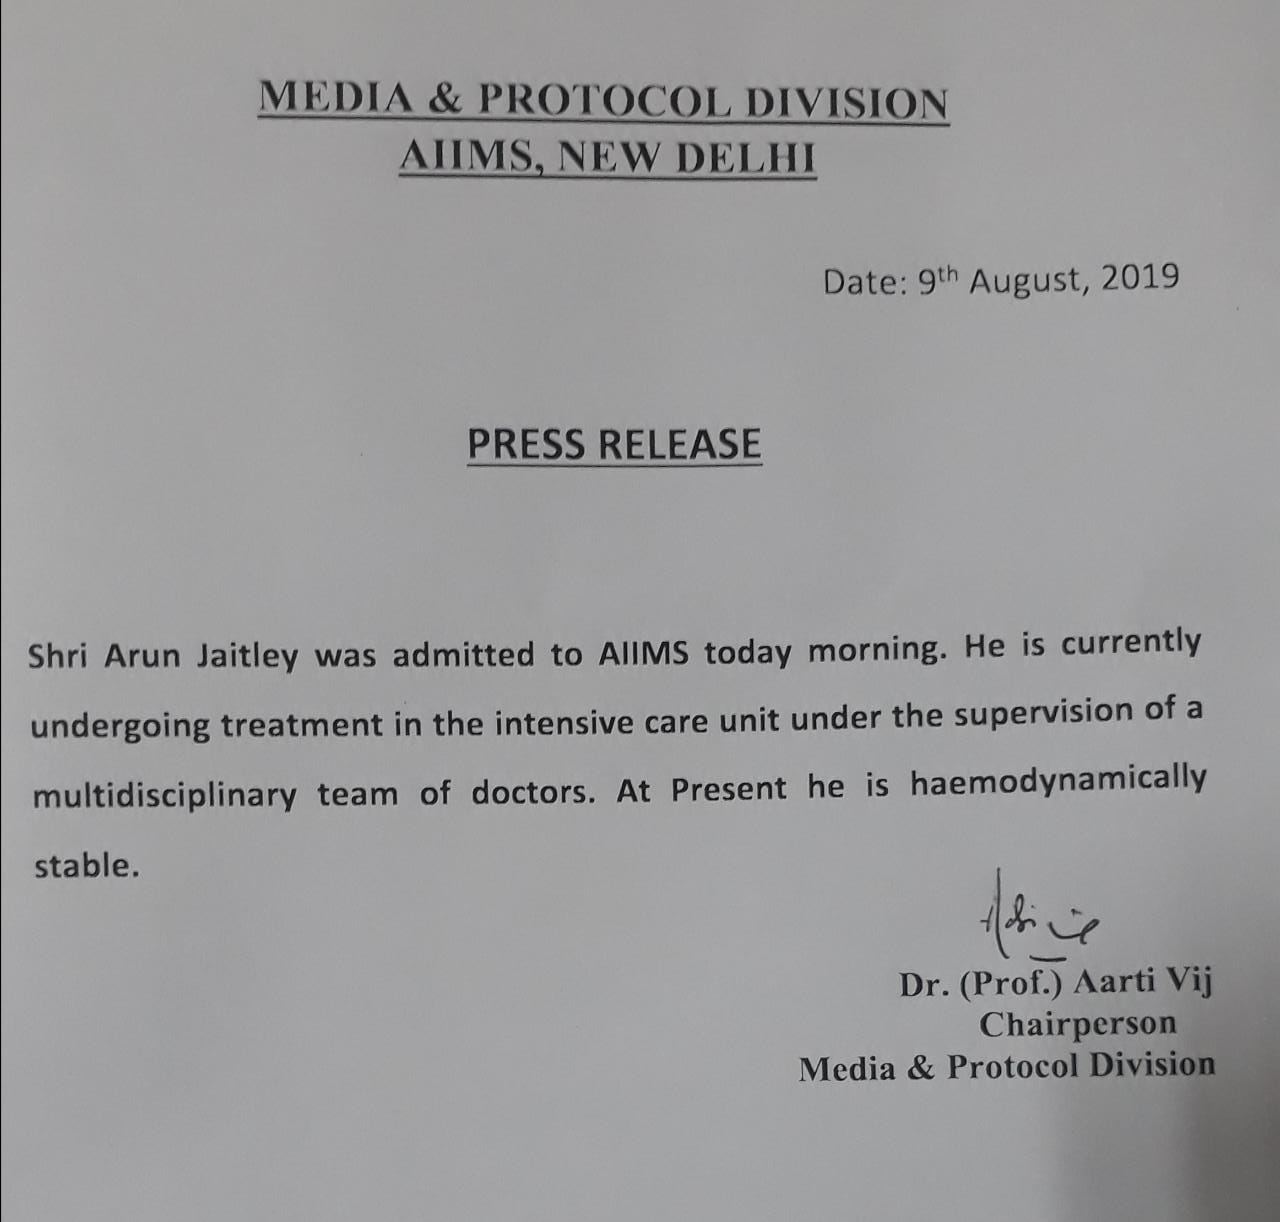 Arun Jaitley admitted to AIIMS in New Delhi hospital says former FMs blood pressure under manageable limits